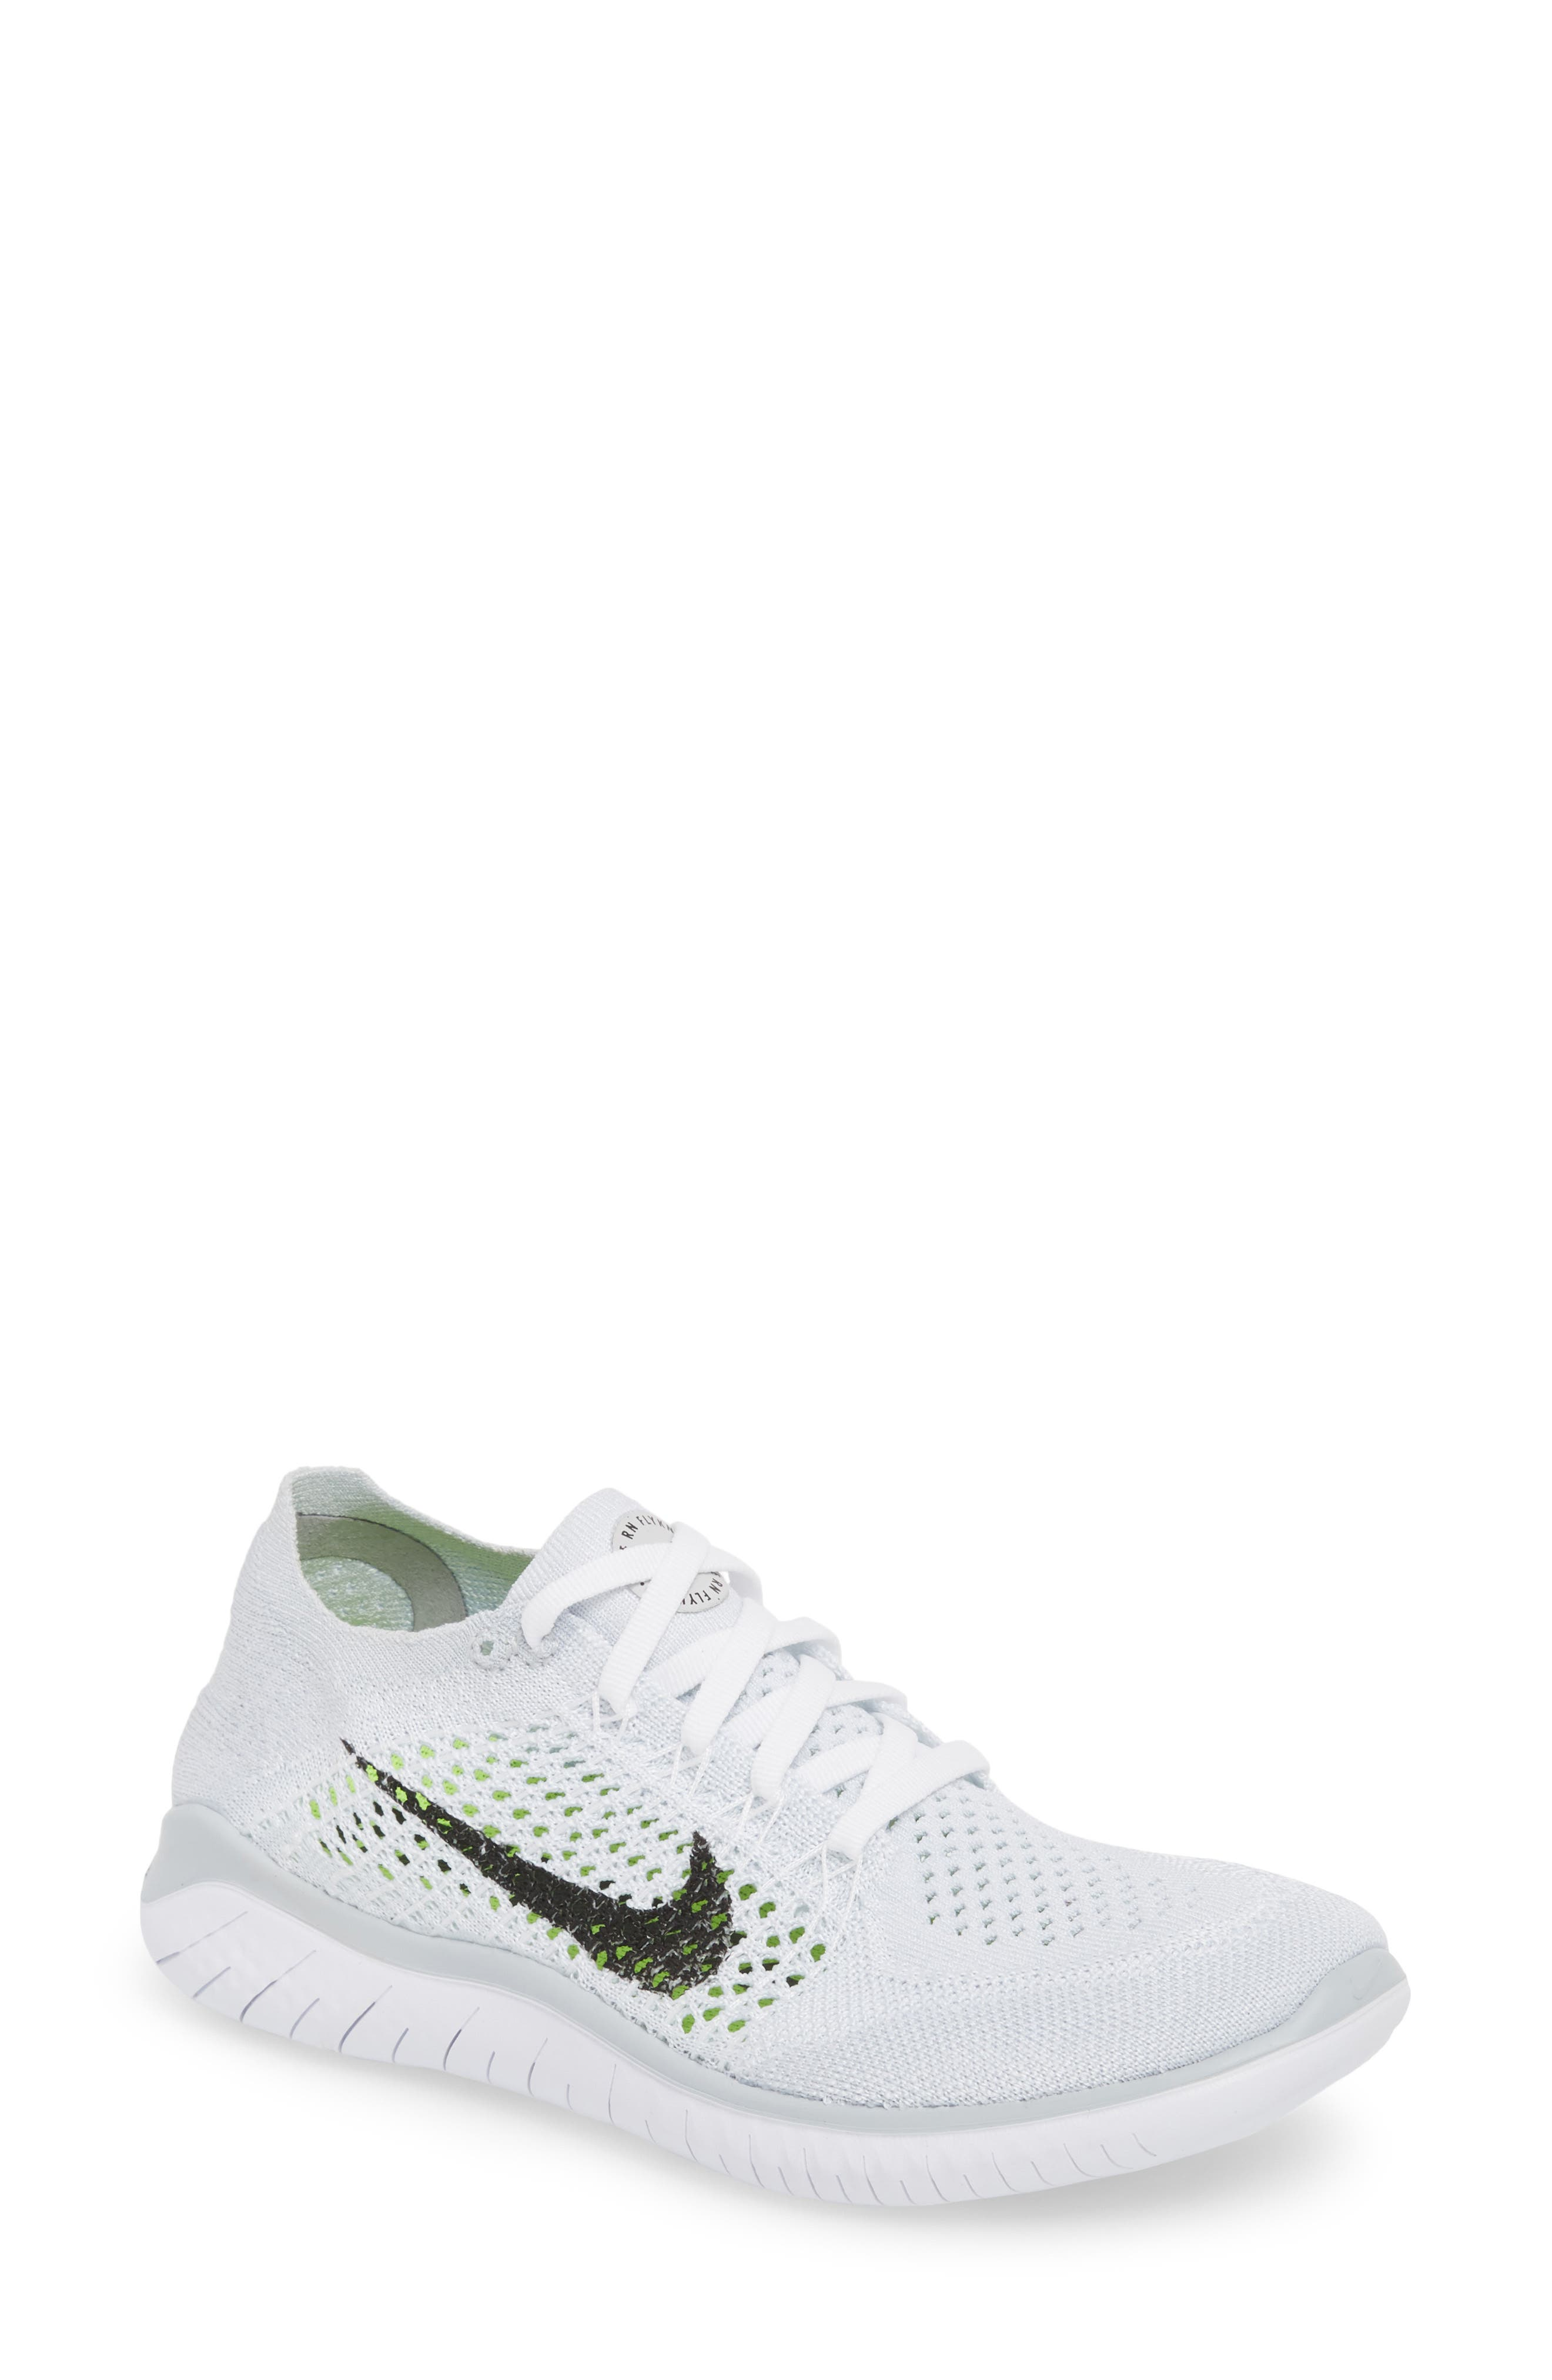 Free RN Flyknit 2018 Running Shoe,                         Main,                         color, WHITE/ BLACK/ PURE PLATINUM